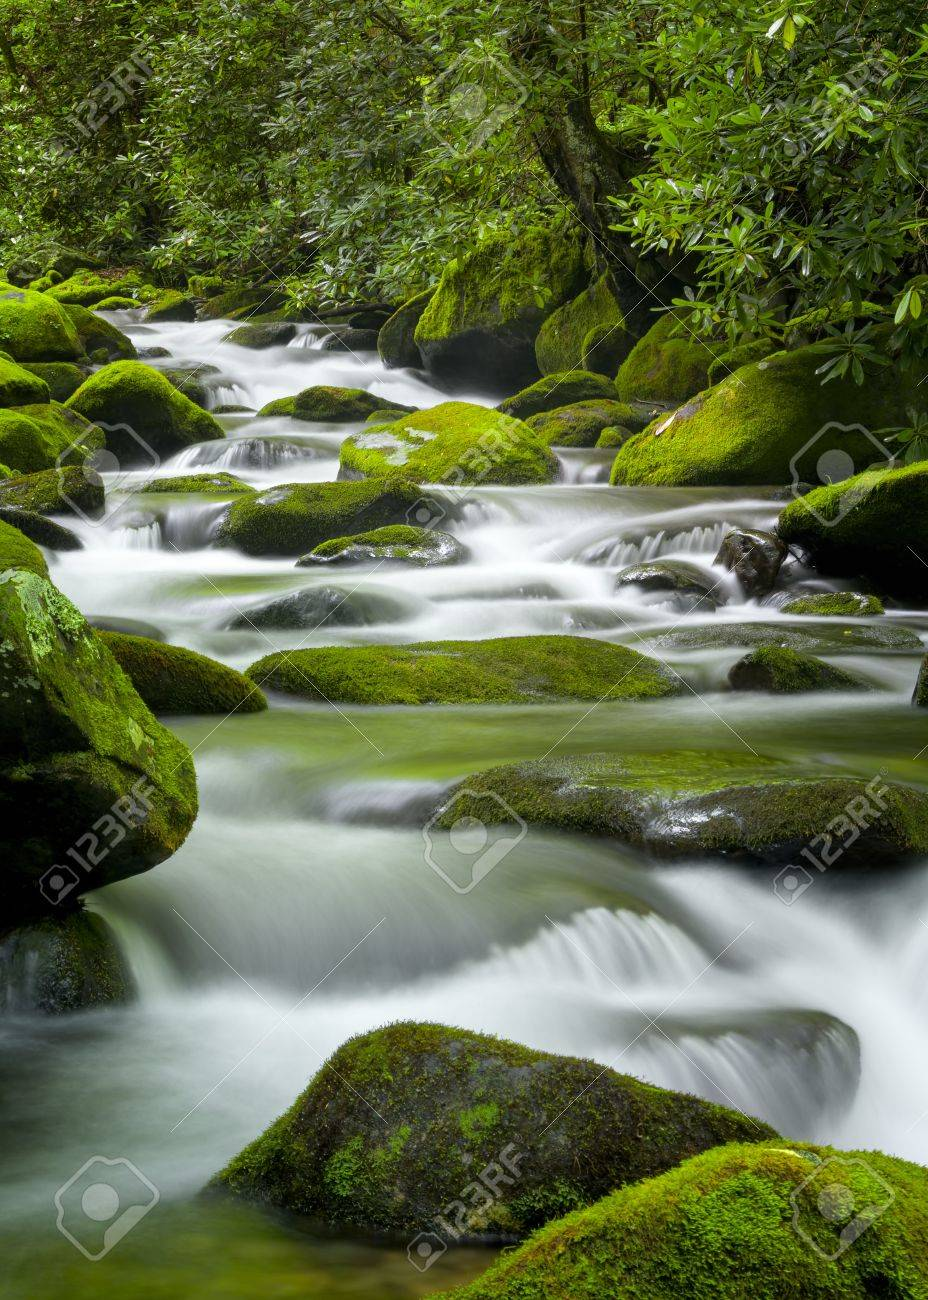 Silky water cascading over bright green moss-covered boulders in a Tennessee stream - 19014350